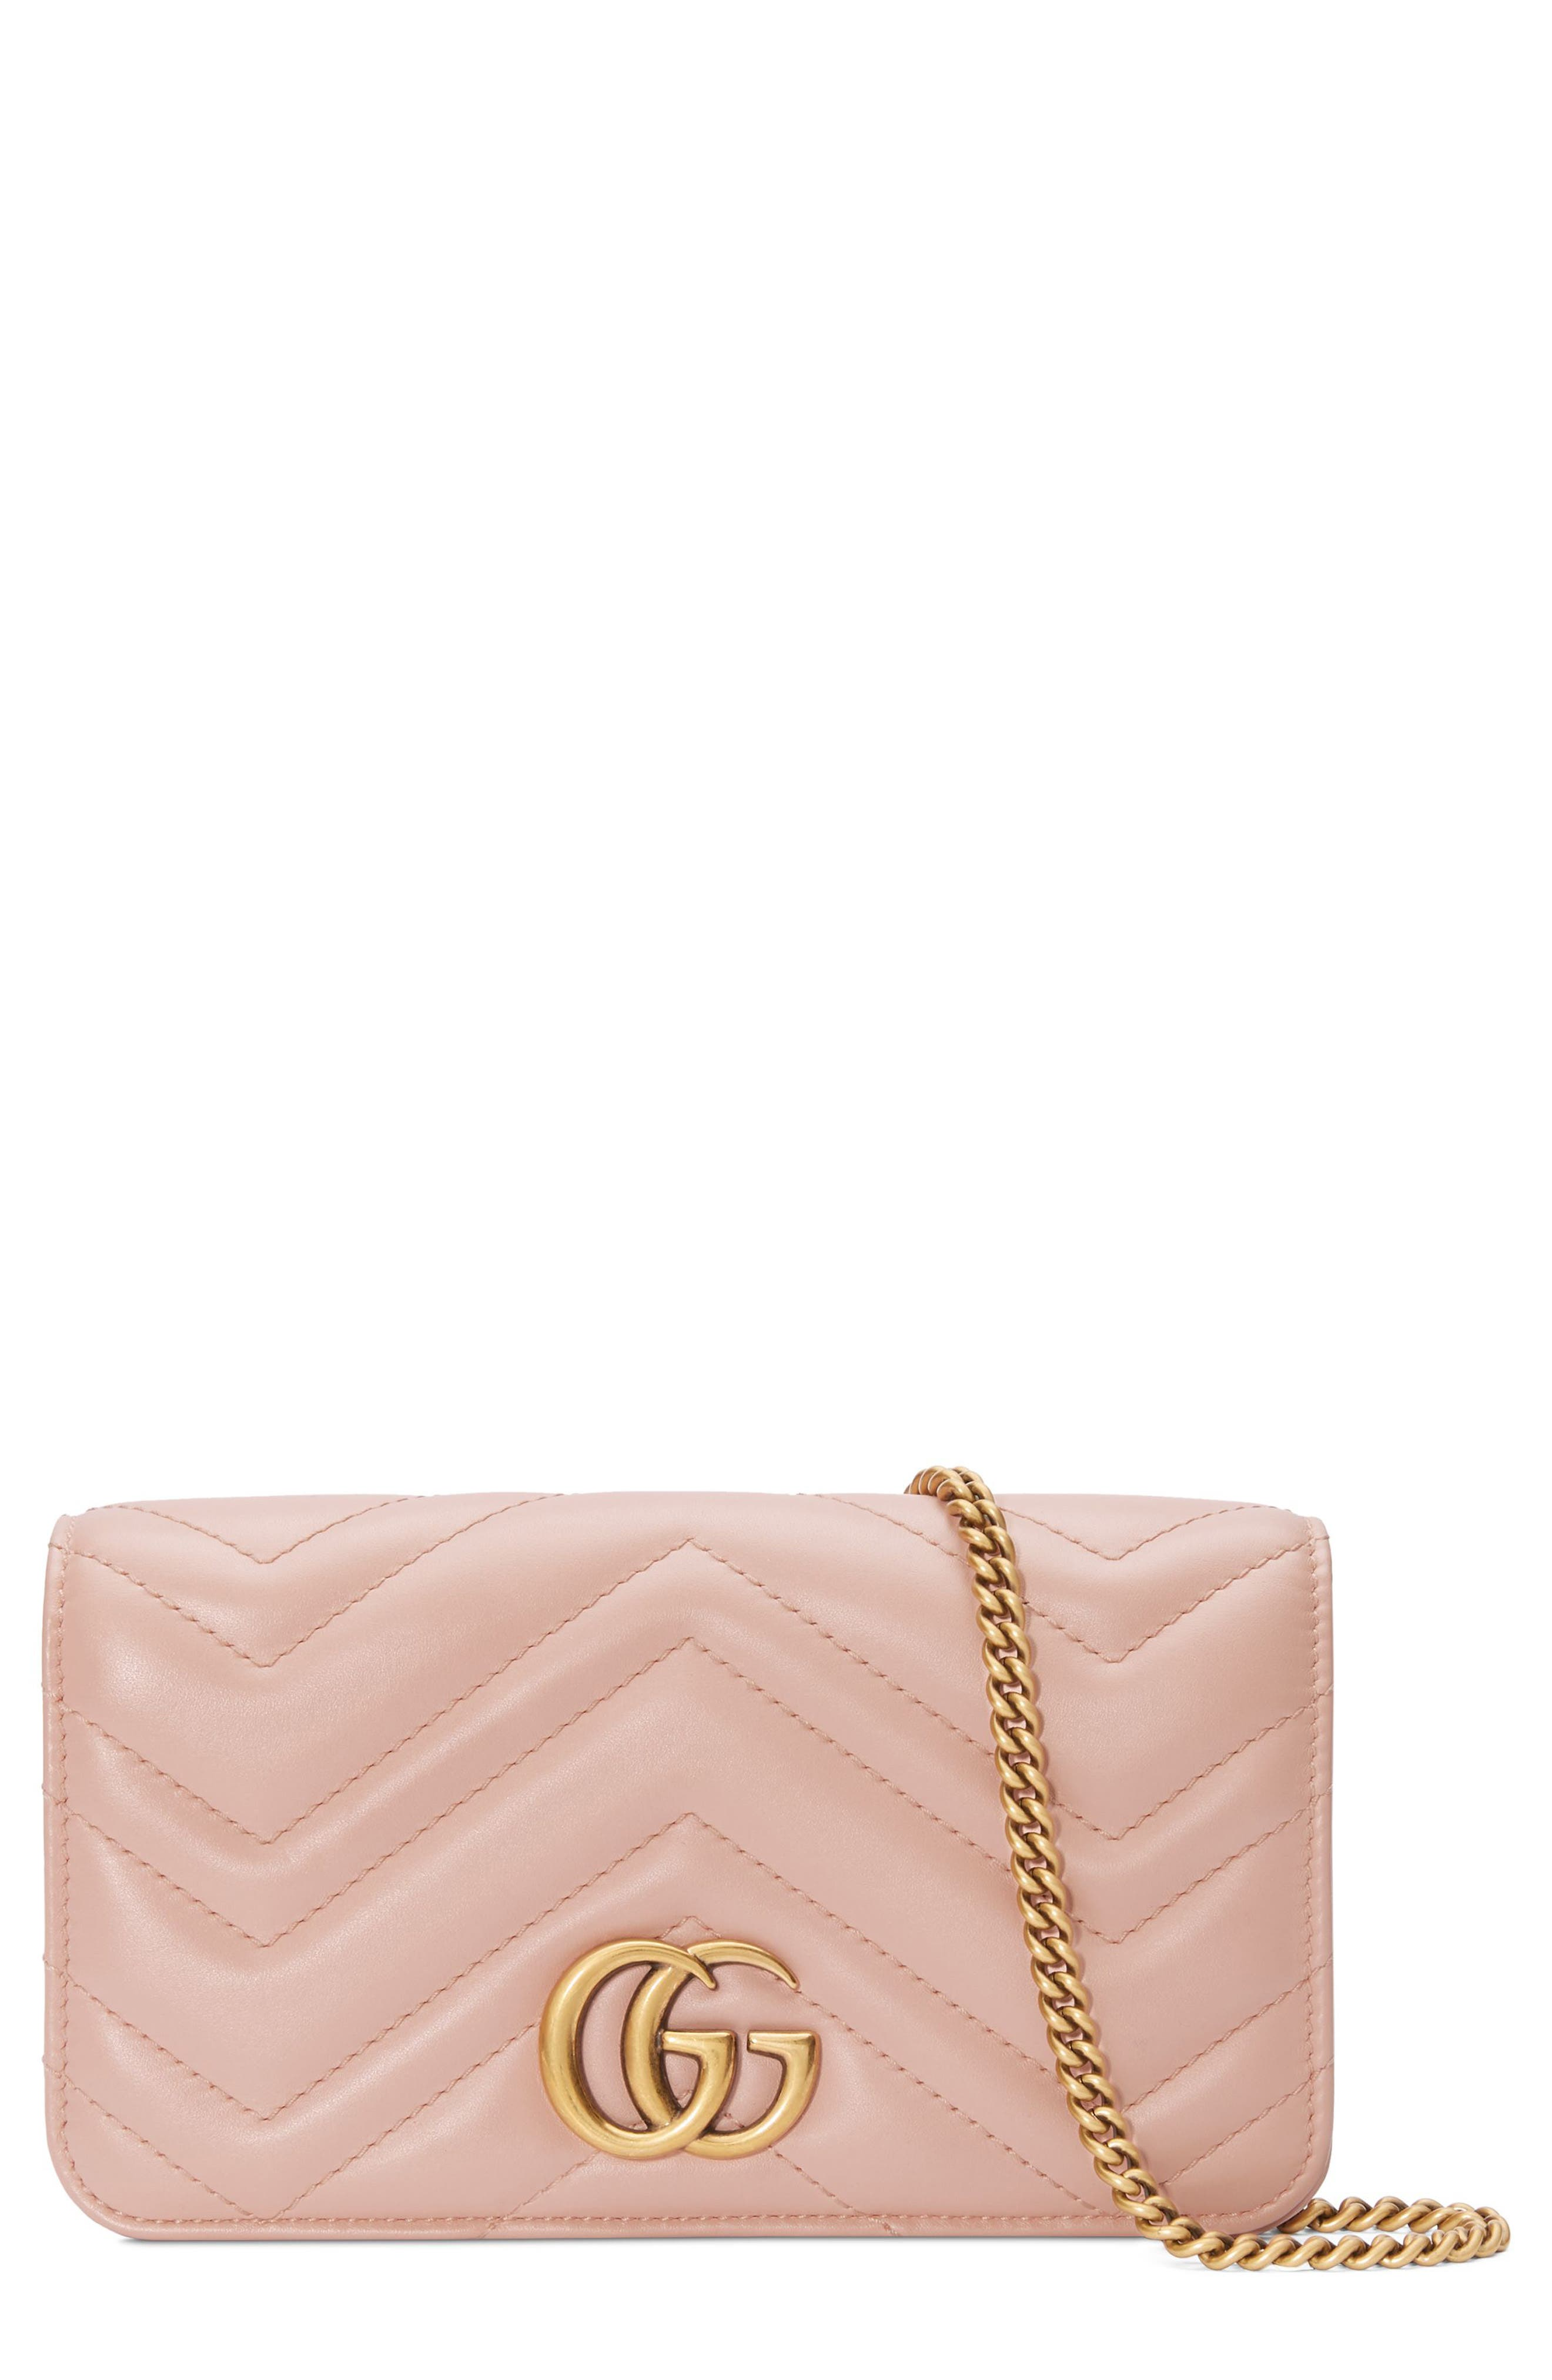 Marmont 2.0 Leather Shoulder Bag,                         Main,                         color, PERFECT PINK